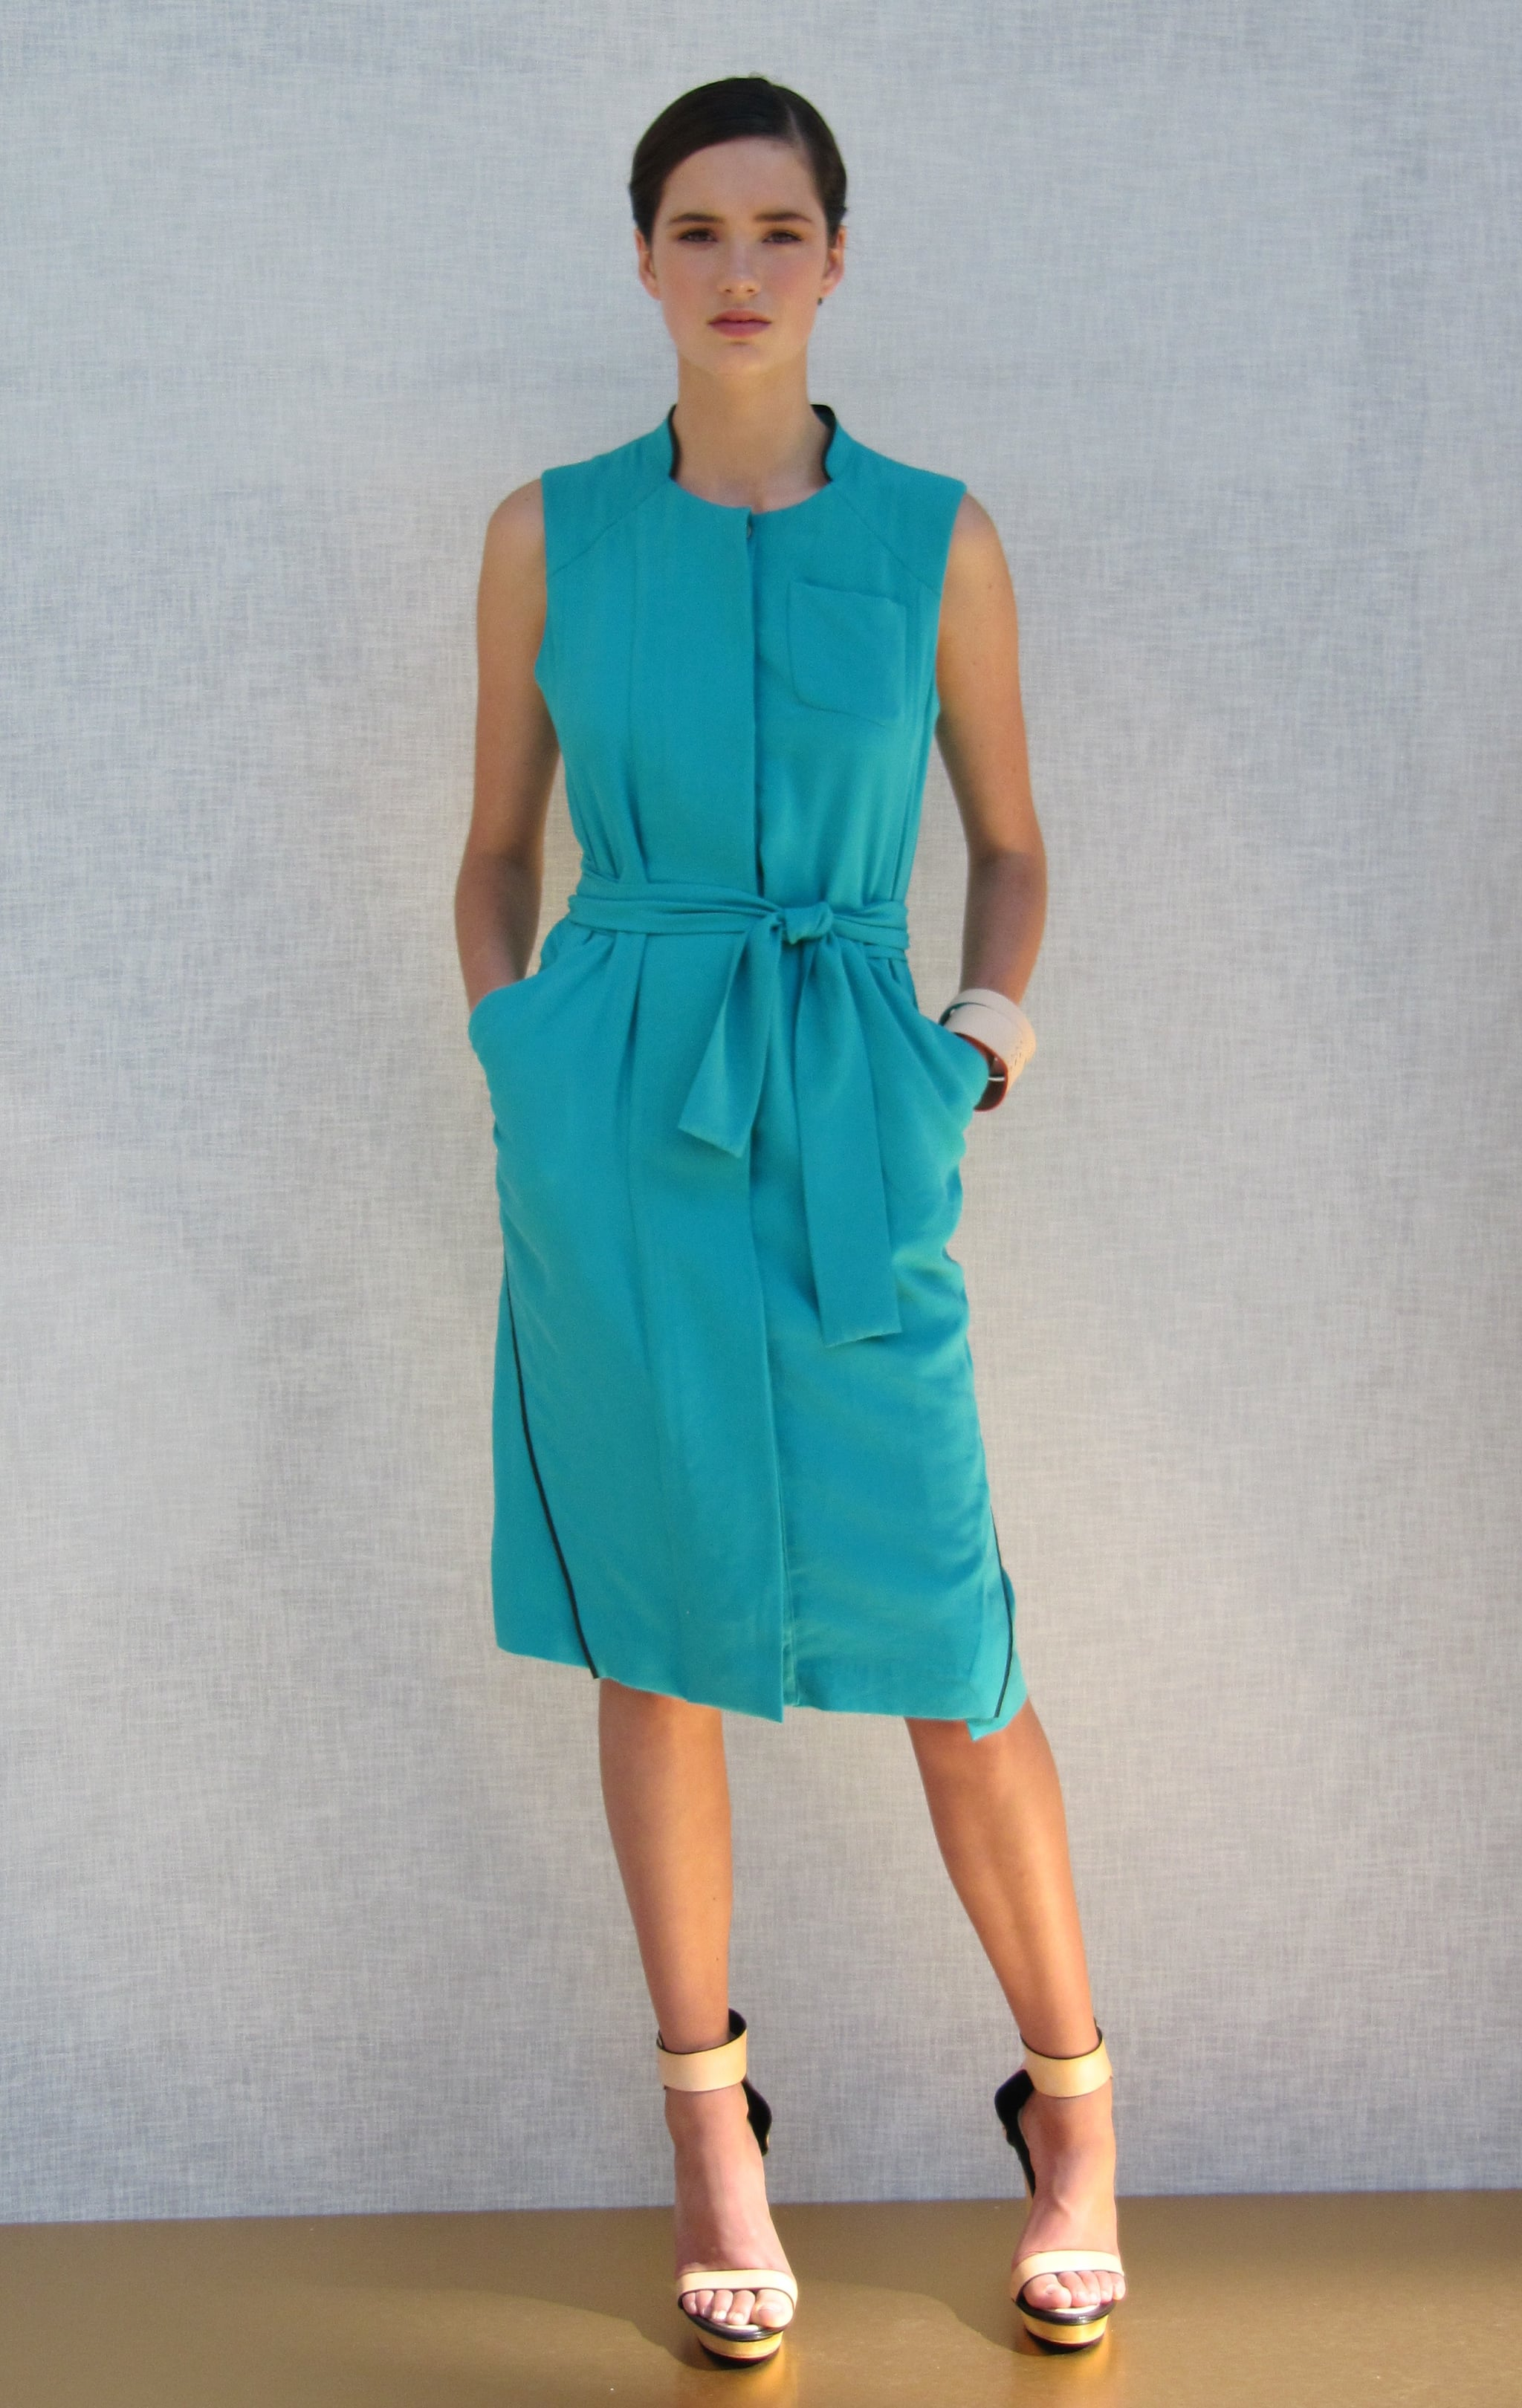 Spring roy rachel runway review forecasting dress for on every day in 2019